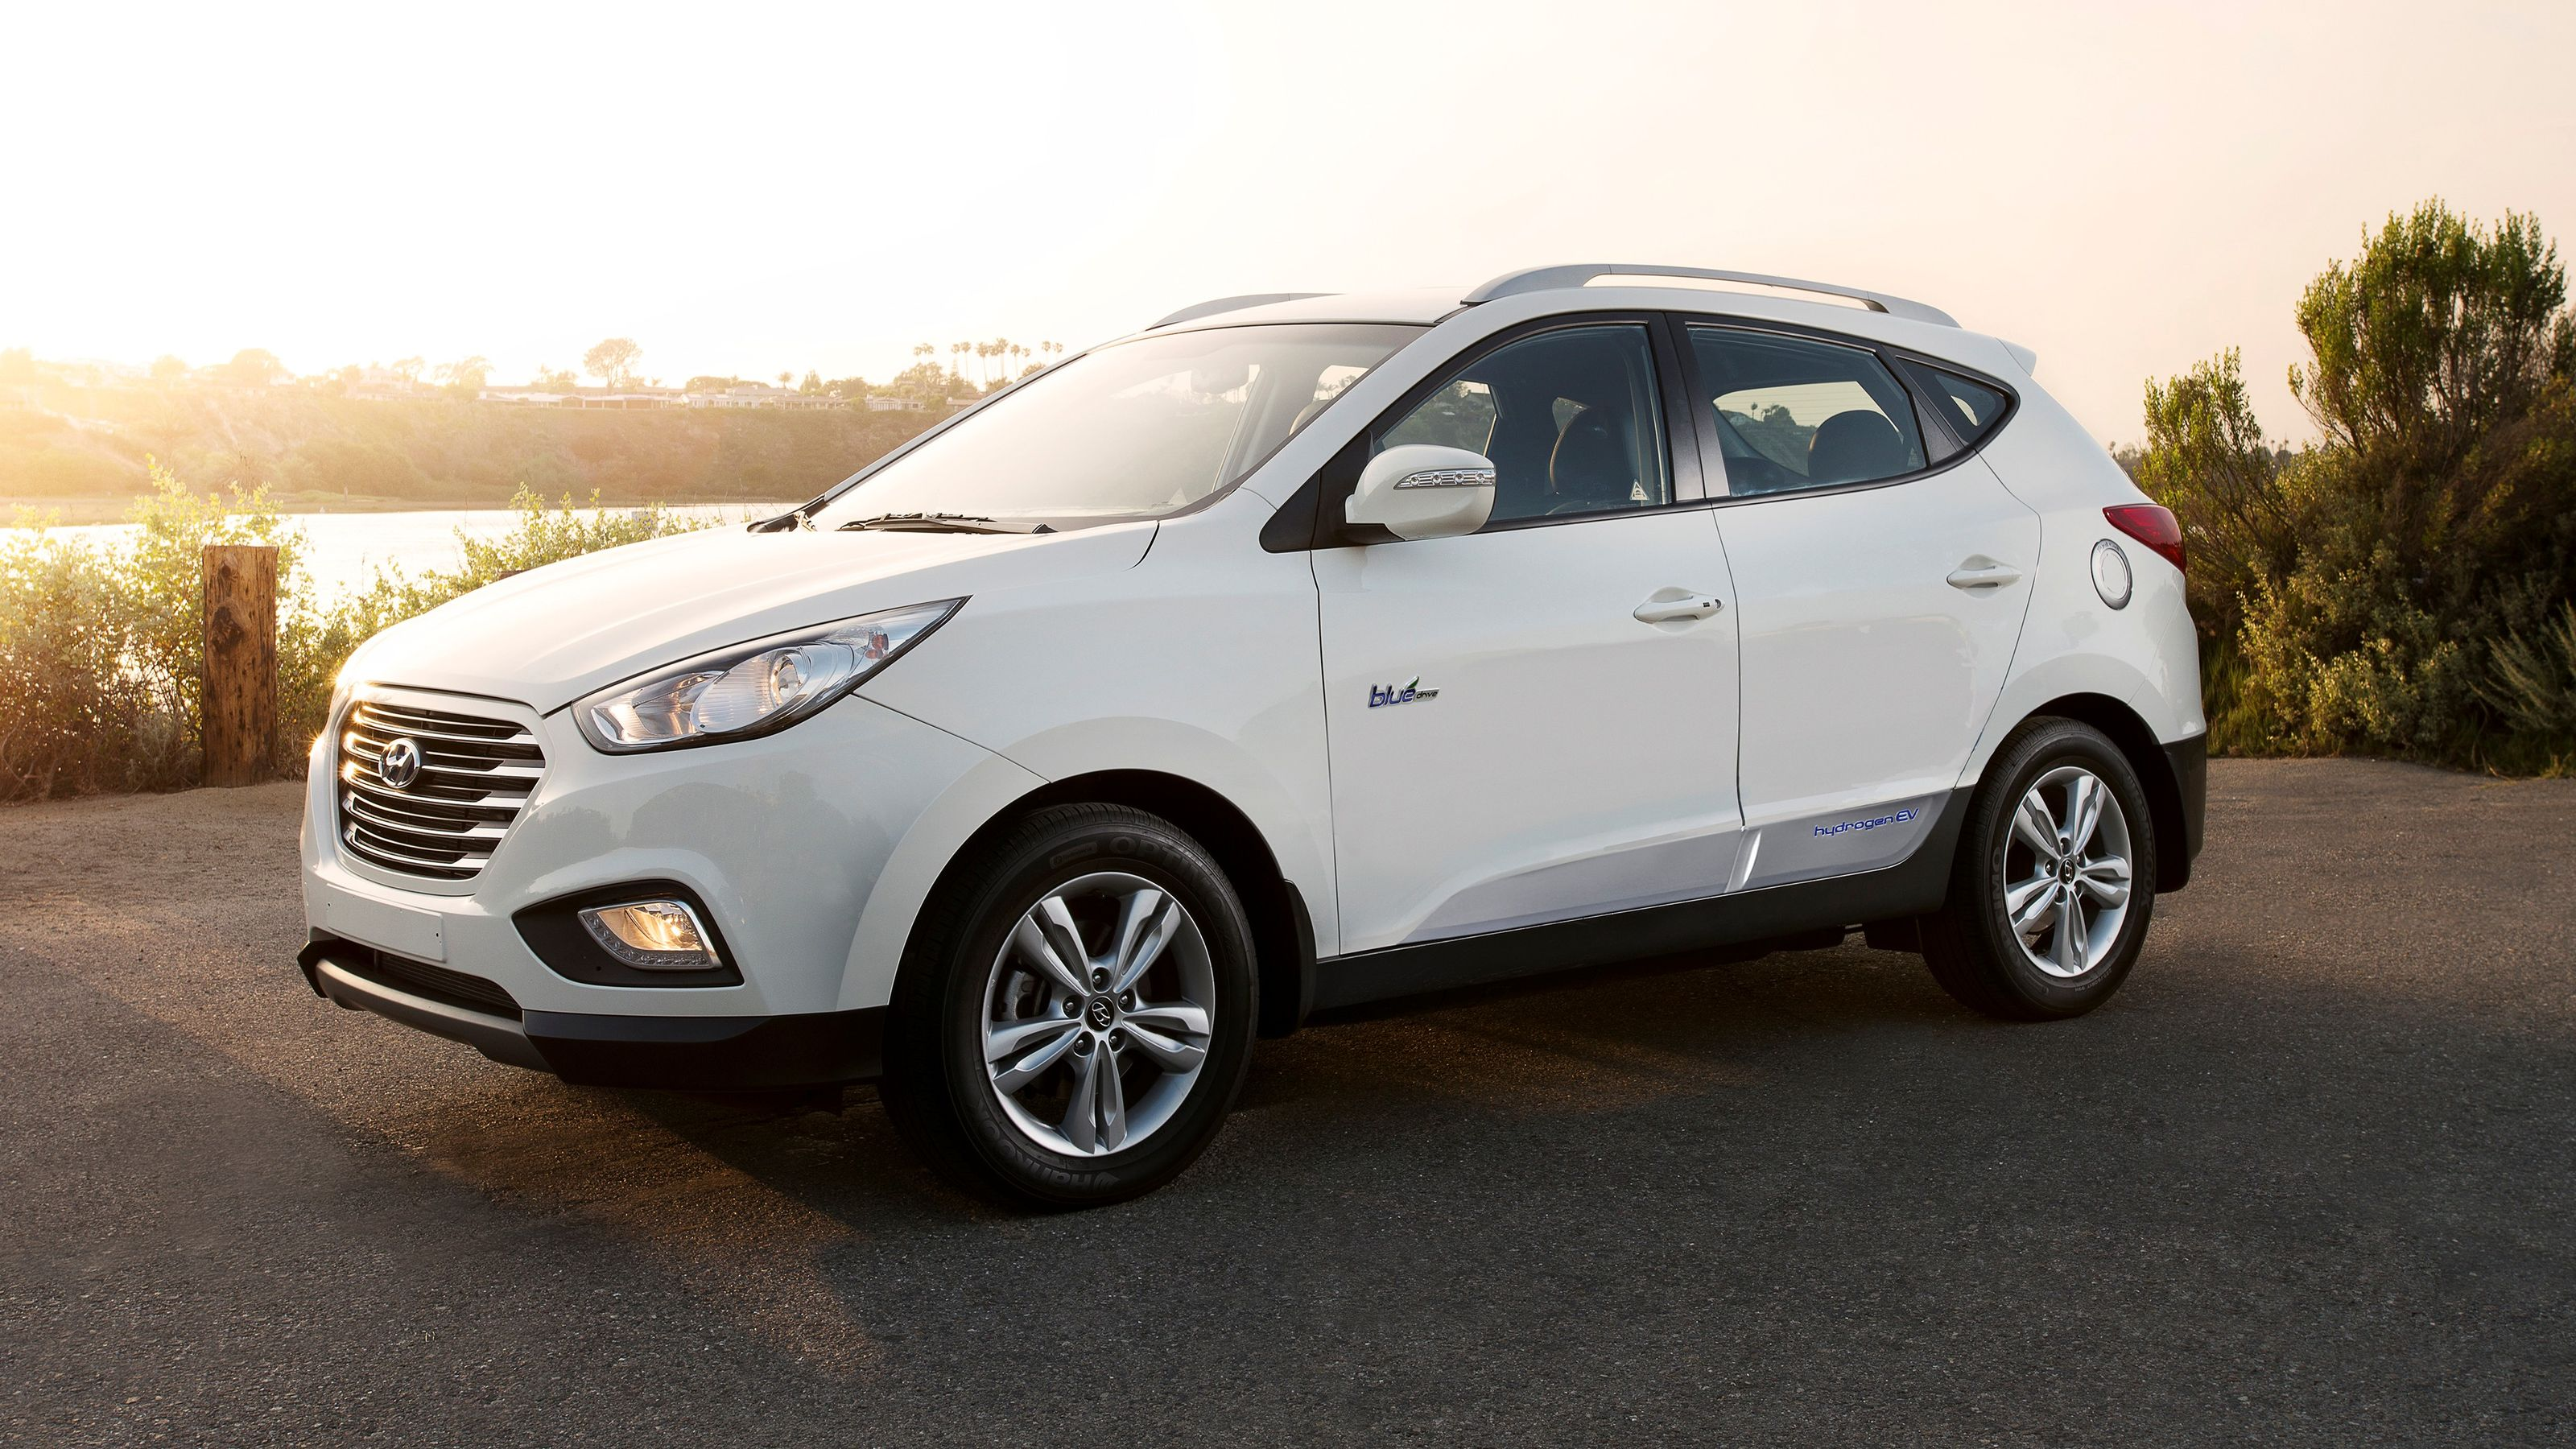 2015 hyundai tucson information and photos zombiedrive. Black Bedroom Furniture Sets. Home Design Ideas